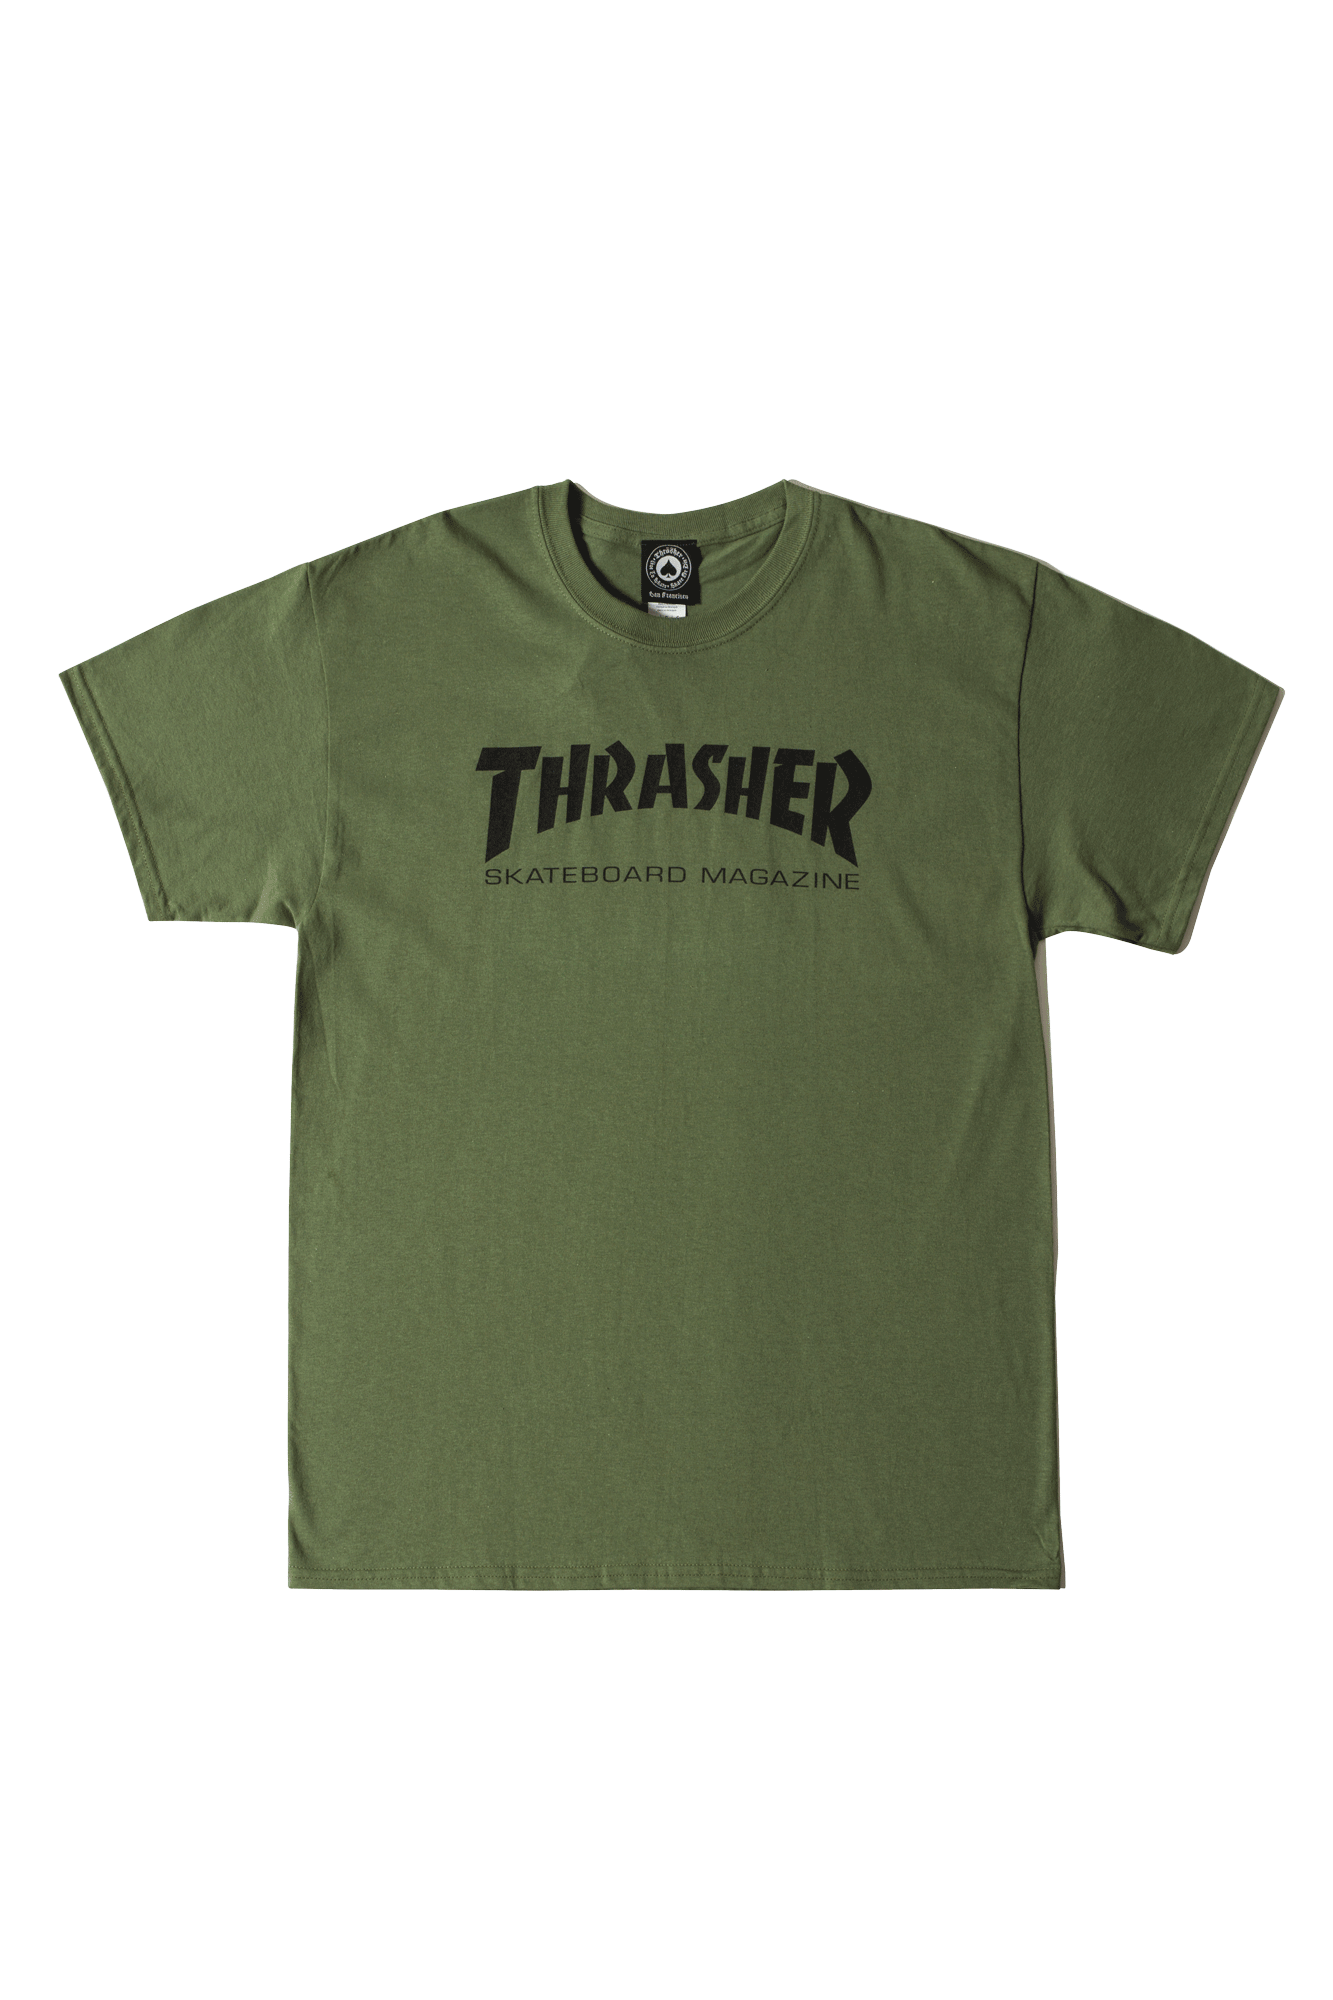 Thrasher T-Shirts Skate Mag Green 311027#000#GREEN#S - One Block Down